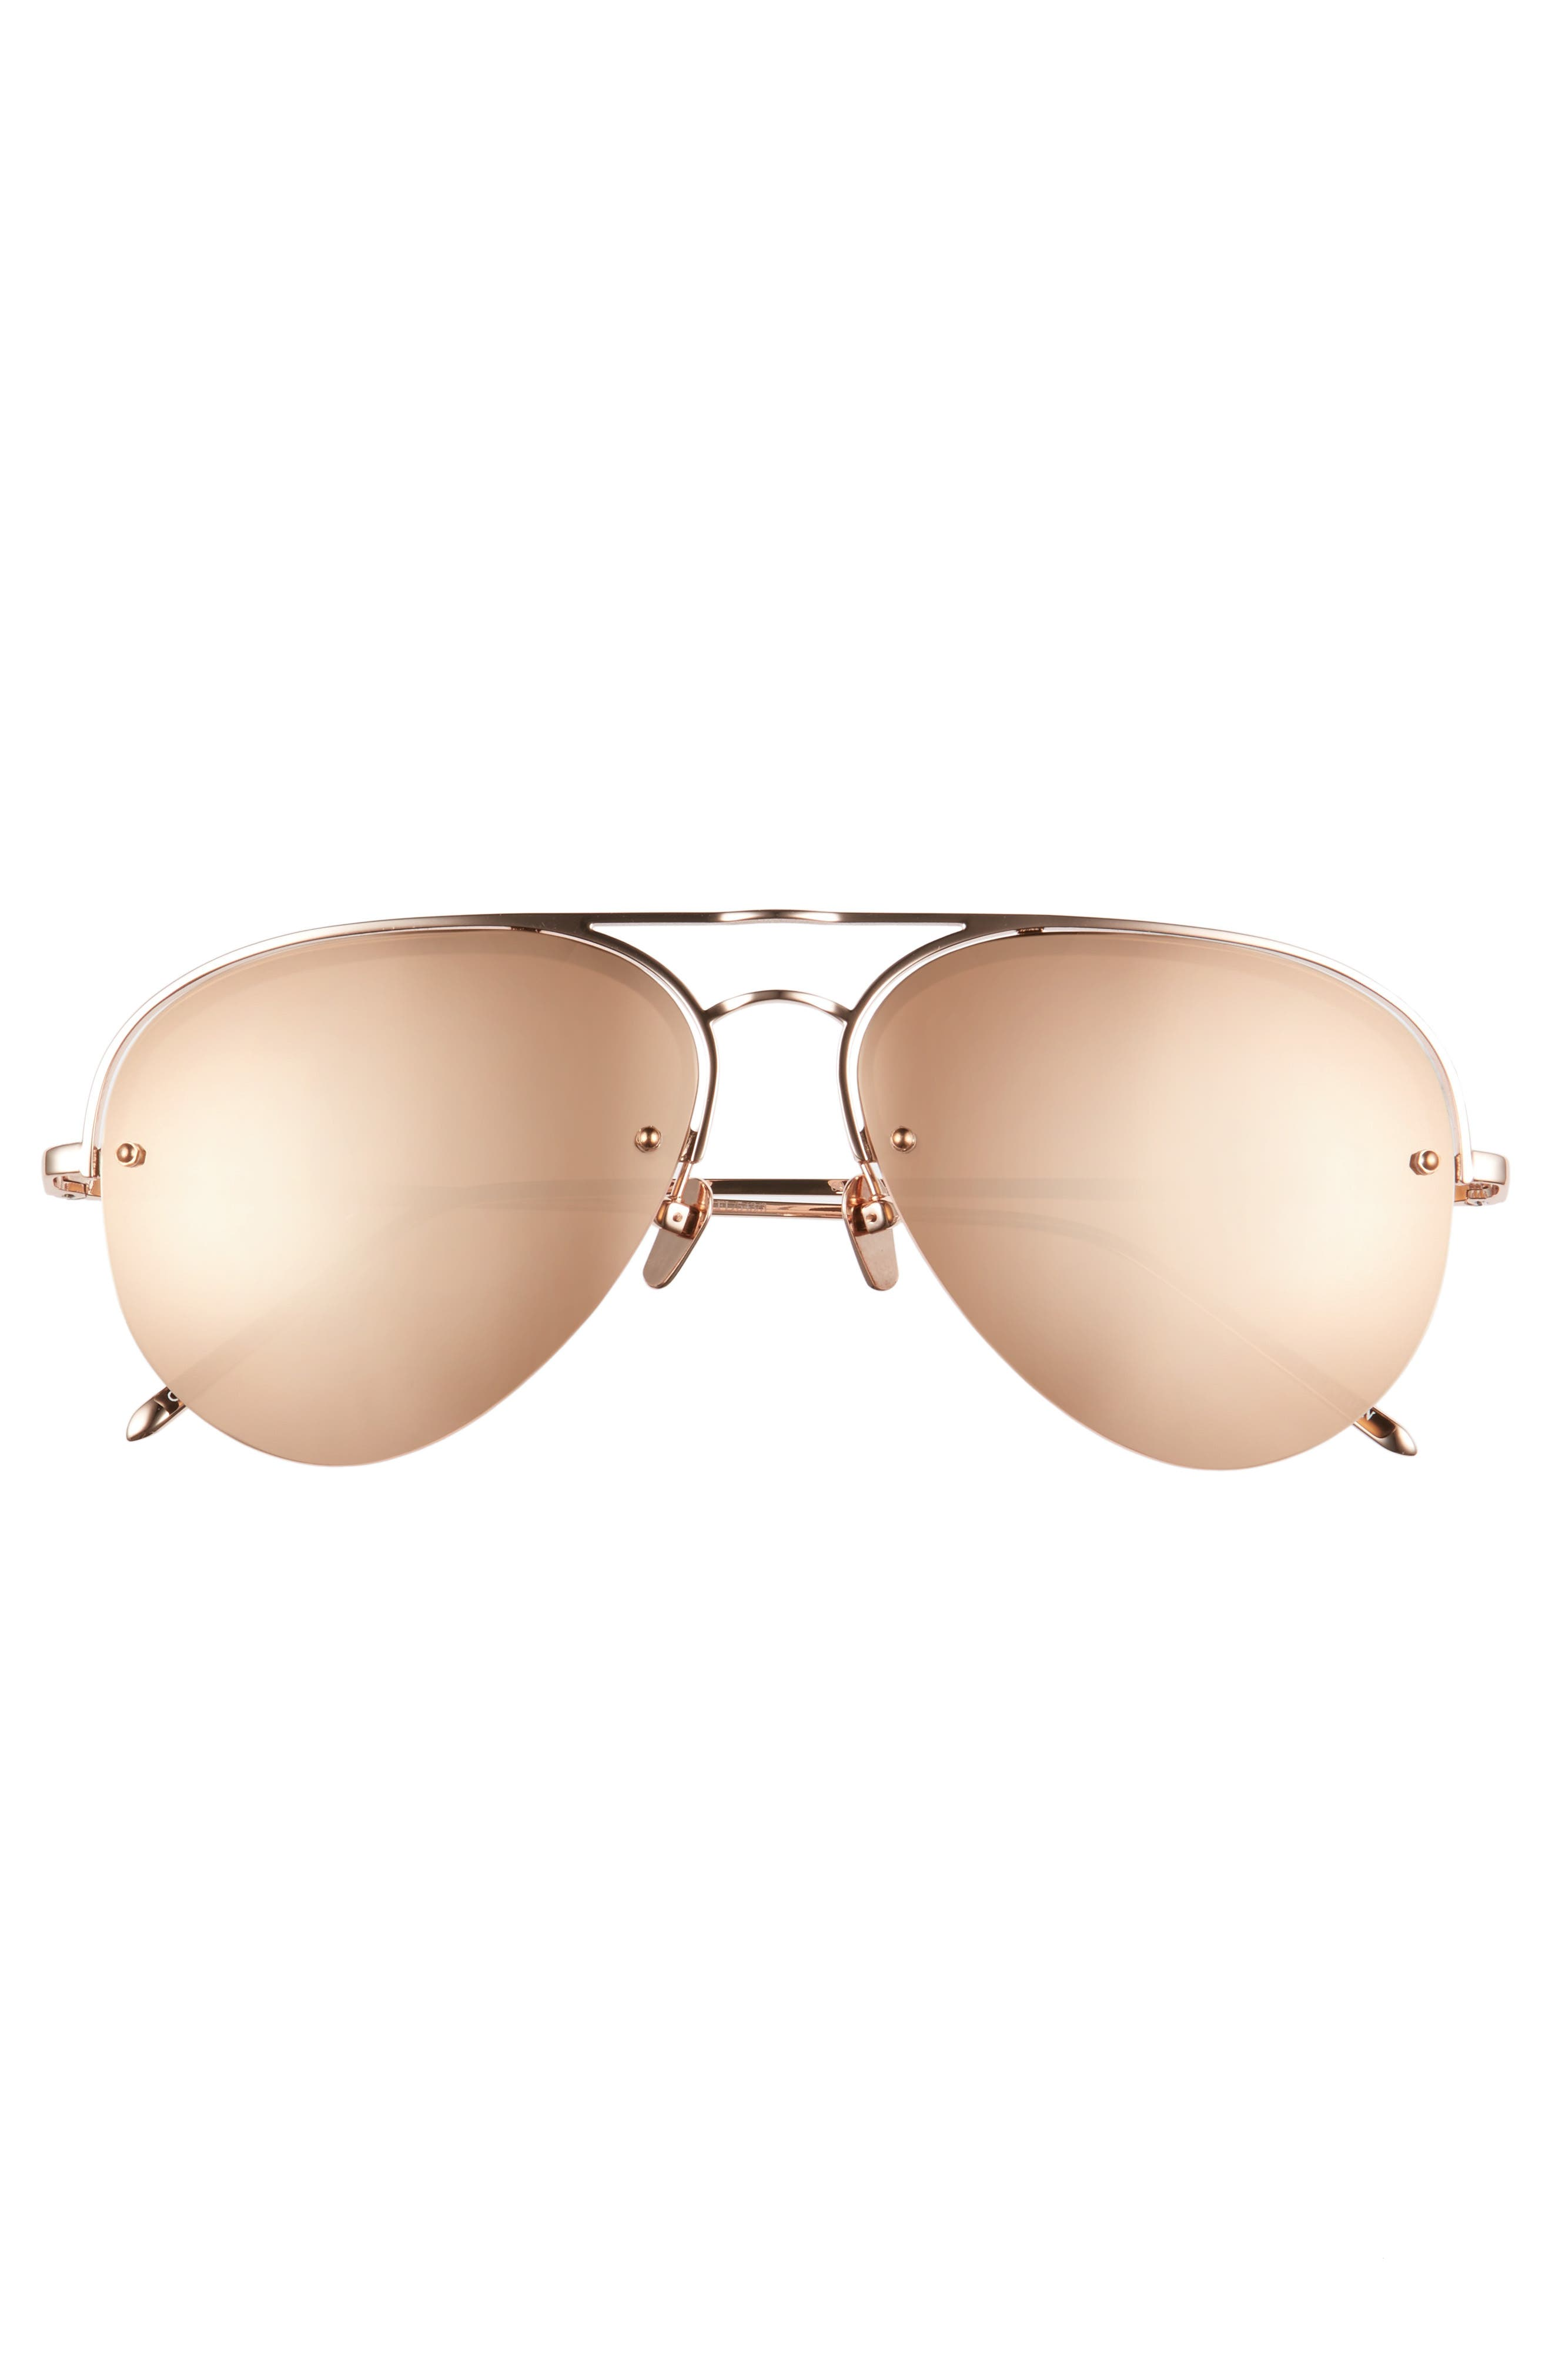 60mm Mirrored 18 Karat Gold Aviator Sunglasses,                             Alternate thumbnail 3, color,                             ROSE GOLD